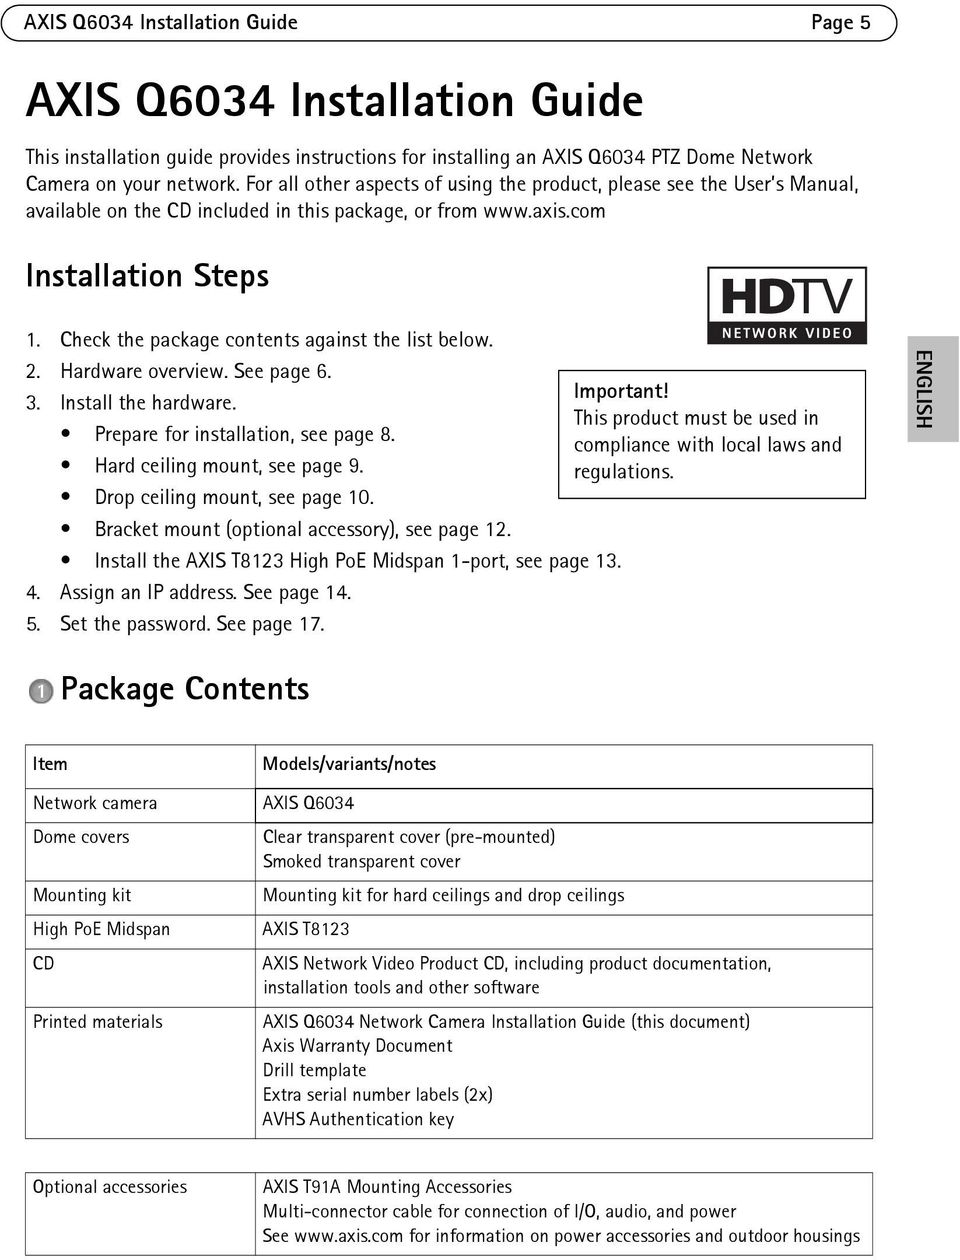 Check the package contents against the list below. 2. Hardware overview. See page 6. Important! 3. Install the hardware. This product must be used in Prepare for installation, see page 8.